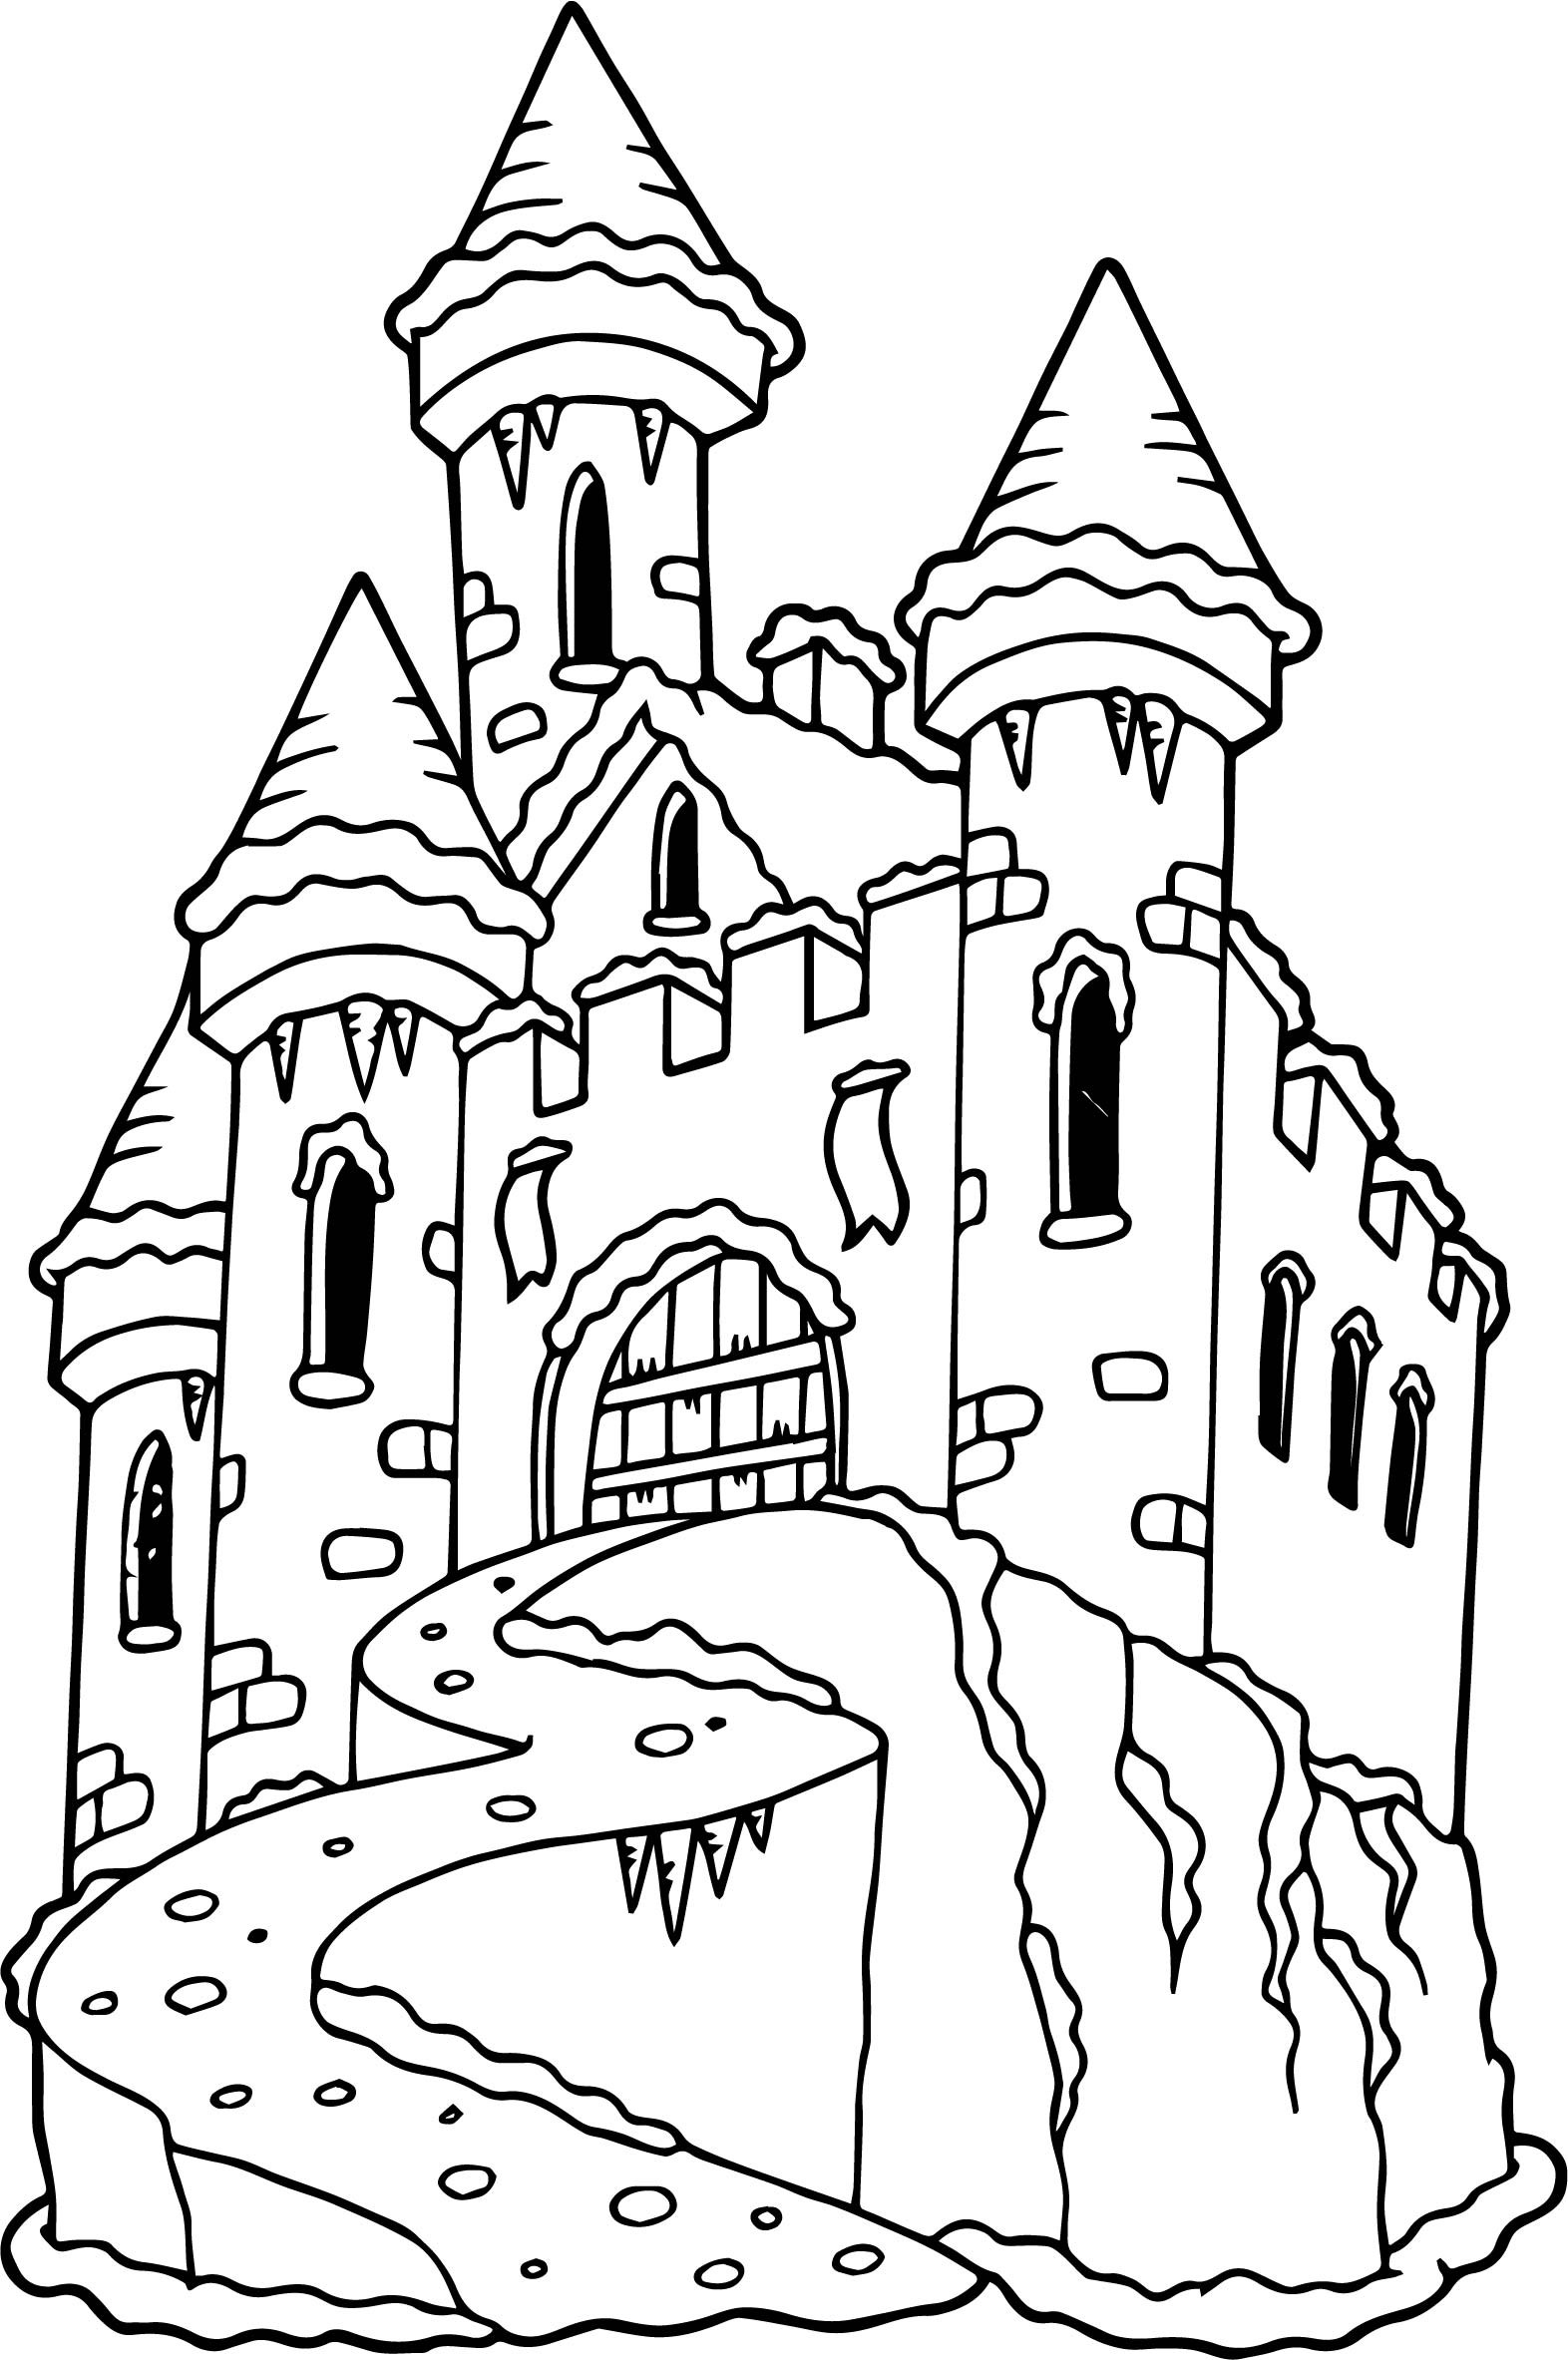 free printable castle coloring pages printable castle coloring pages for kids cool2bkids printable free pages castle coloring